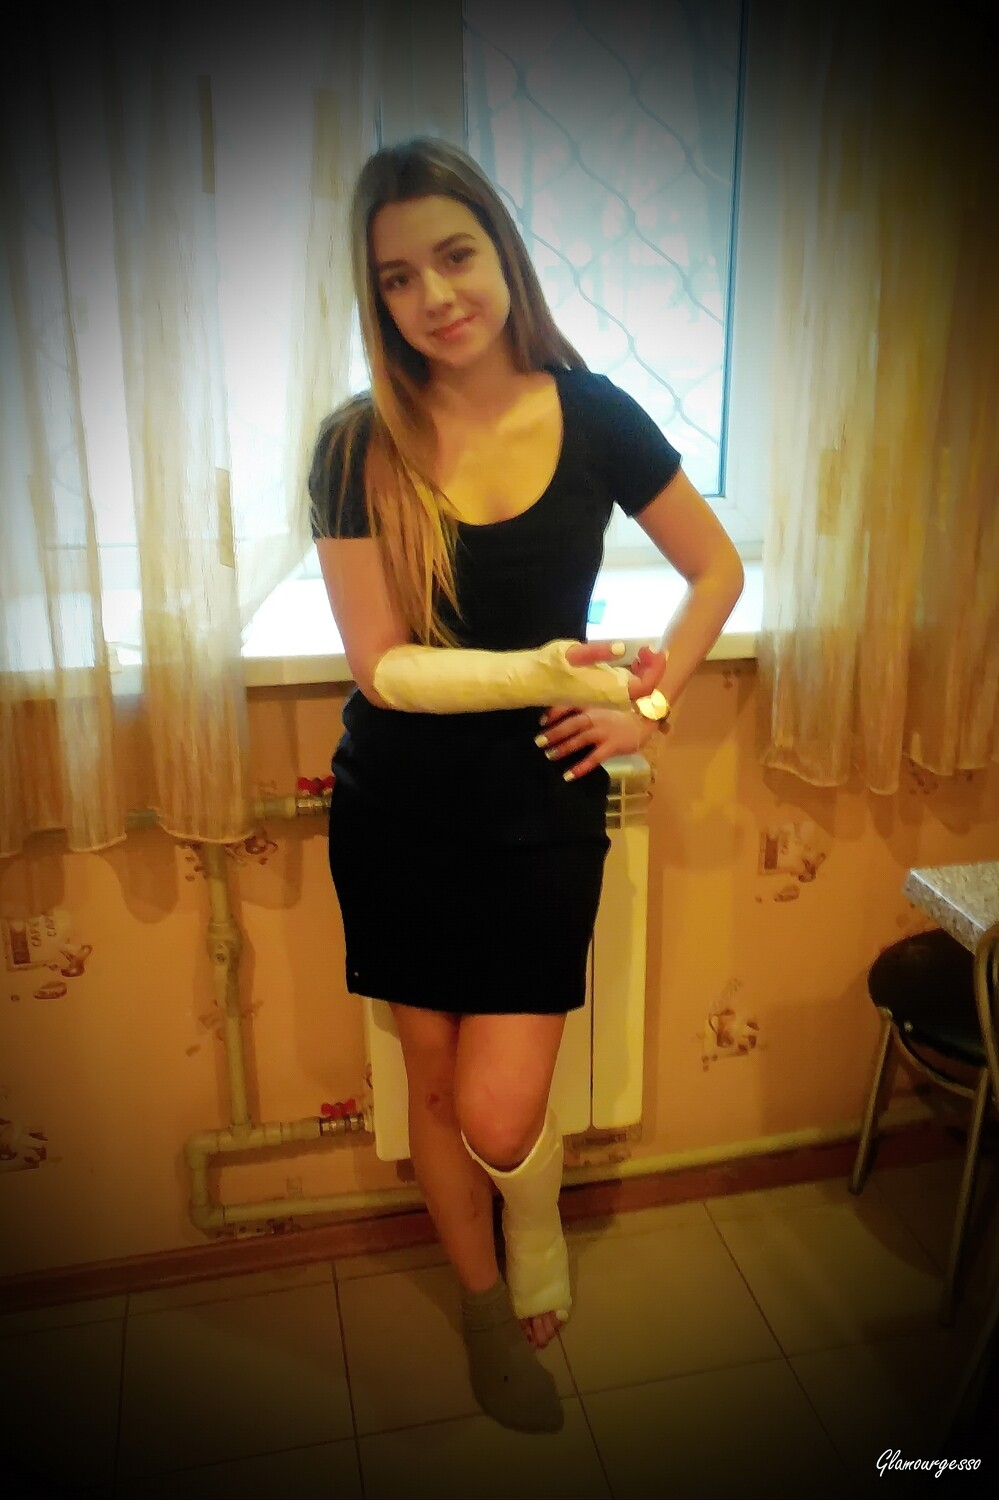 Ukrainian amateur model Marina in armcast and legcast after breaking her right wrist and her left fibula beeing run over by a car on a pedestrian crossing in Kharkiv in May 2015. Sexy and sweet housewife with her casts at home, cleaning rooms, etc.